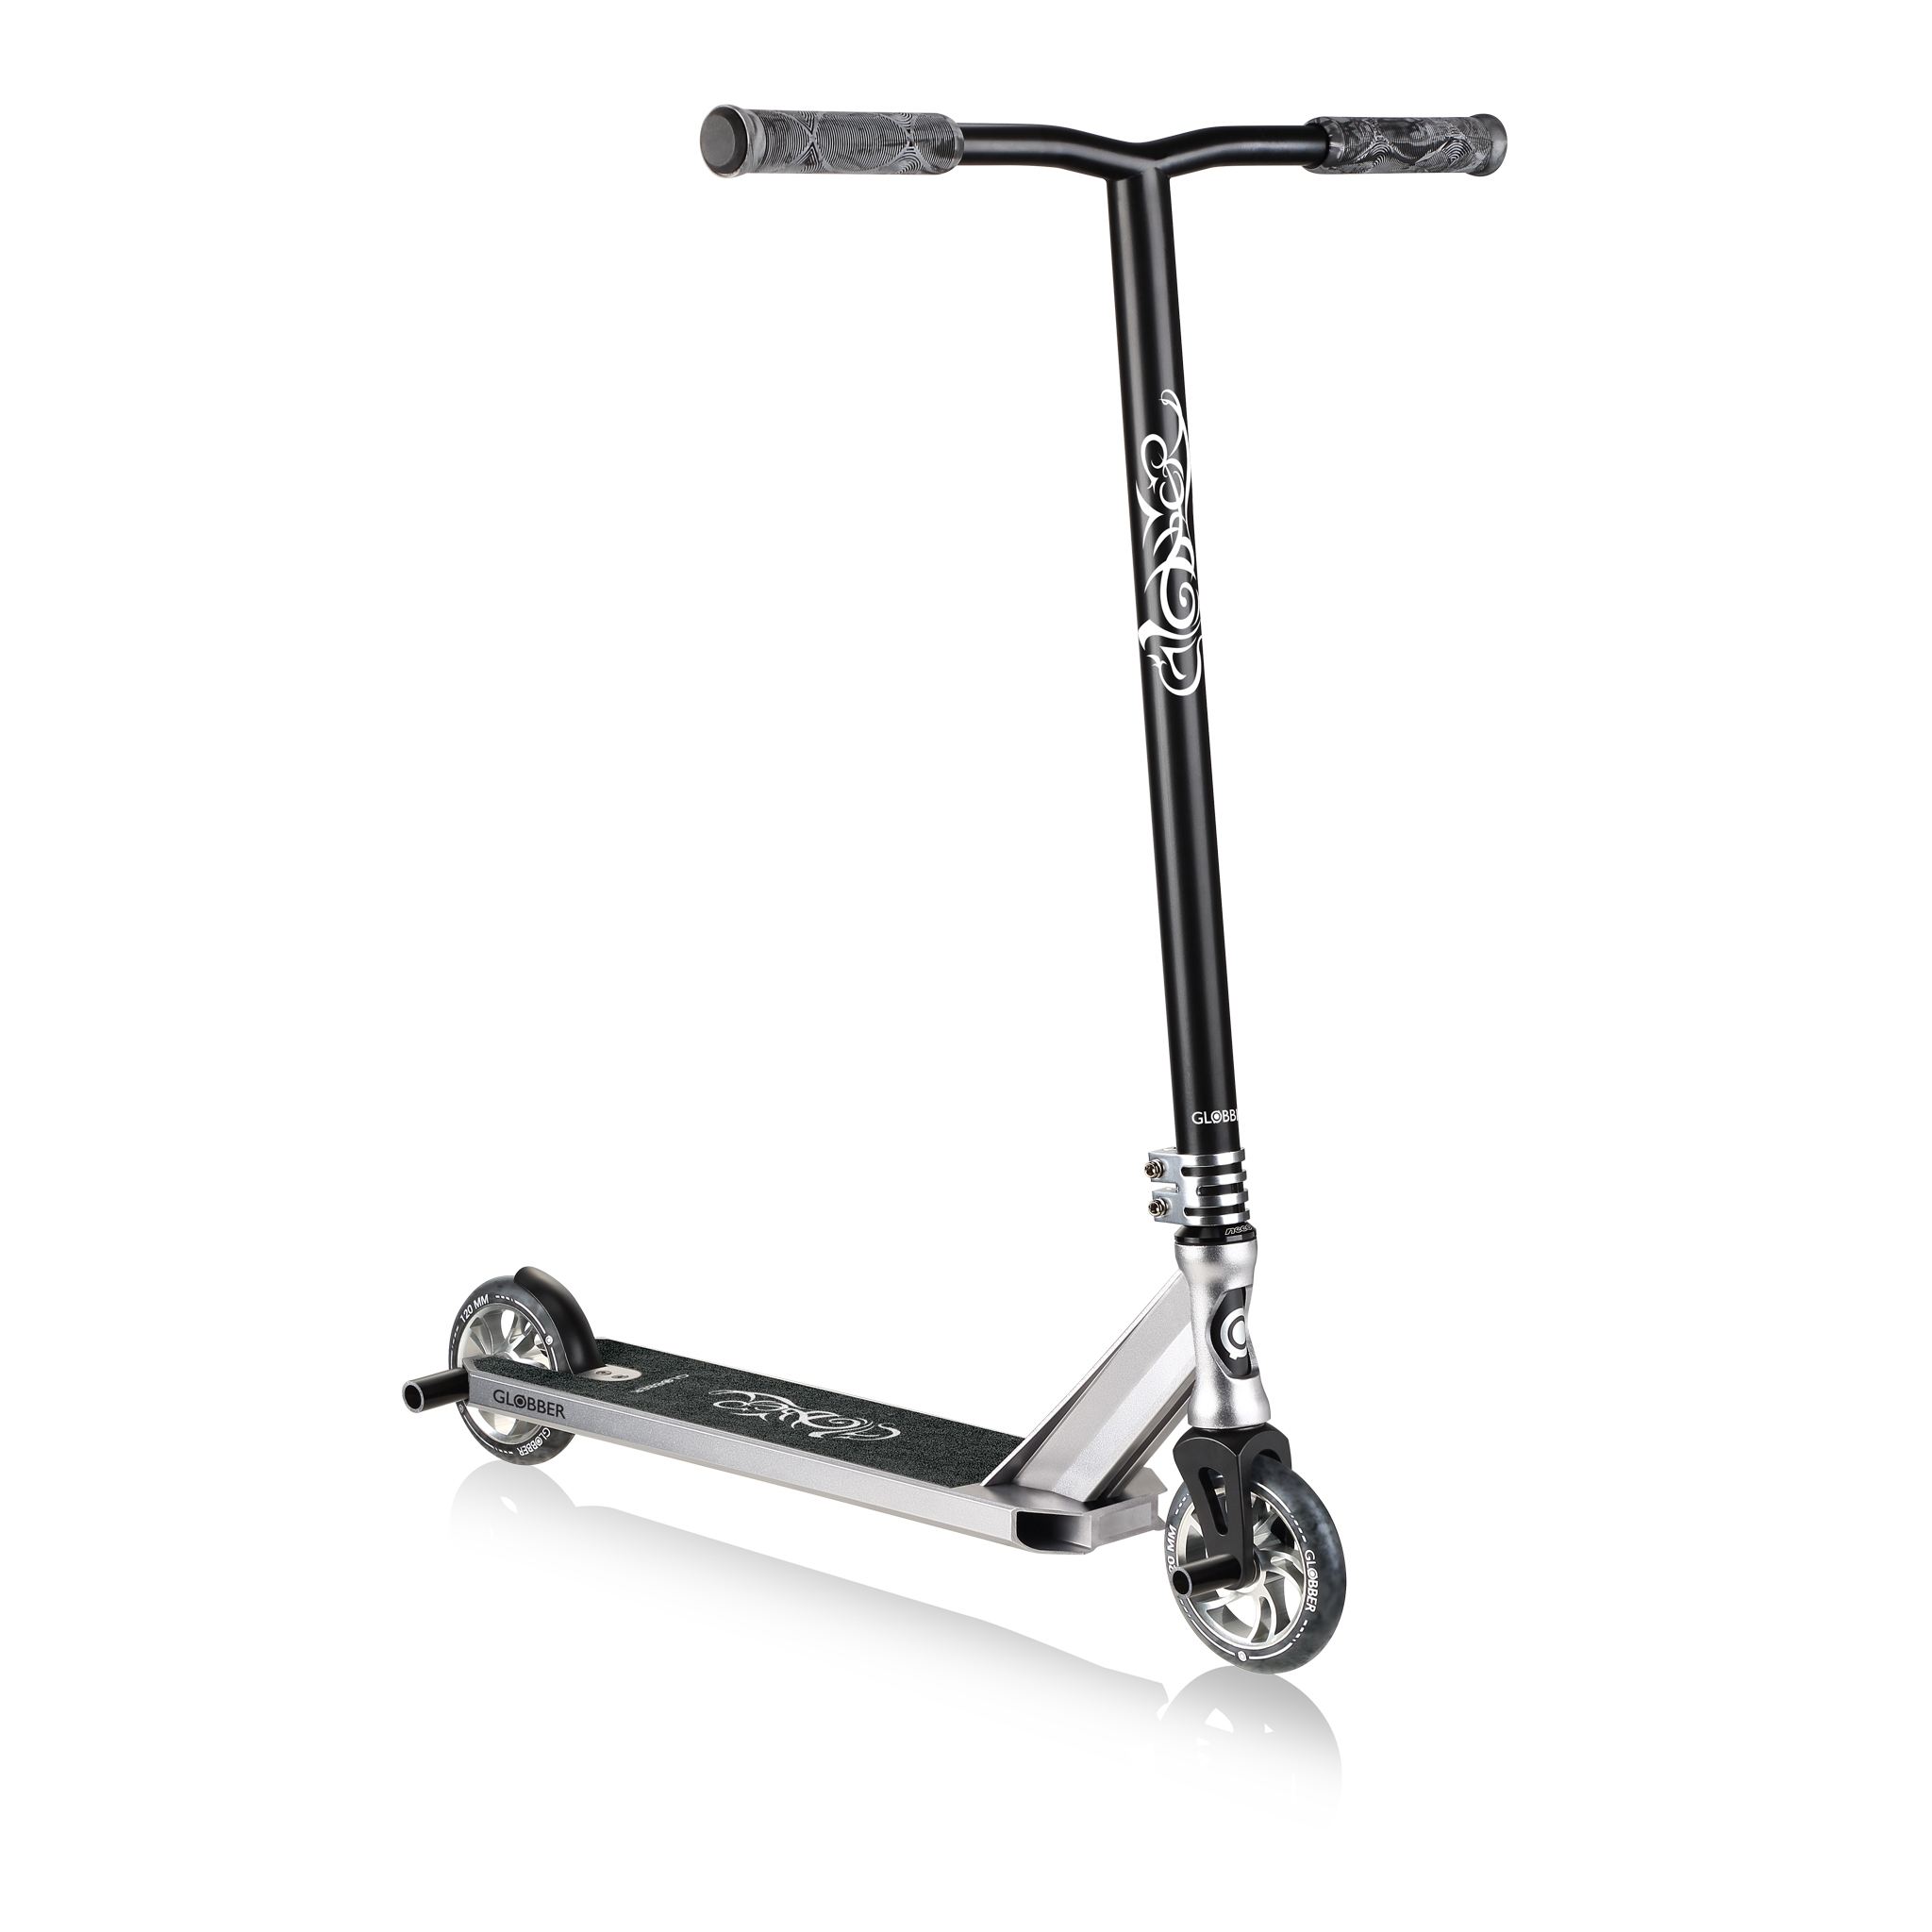 Globber-GS-900-stunt-scooter-for-kids-aged-8-and-teens-and-young-adults-with-120mm-wheels-and-triple-channel-aluminium-deck_grey 0